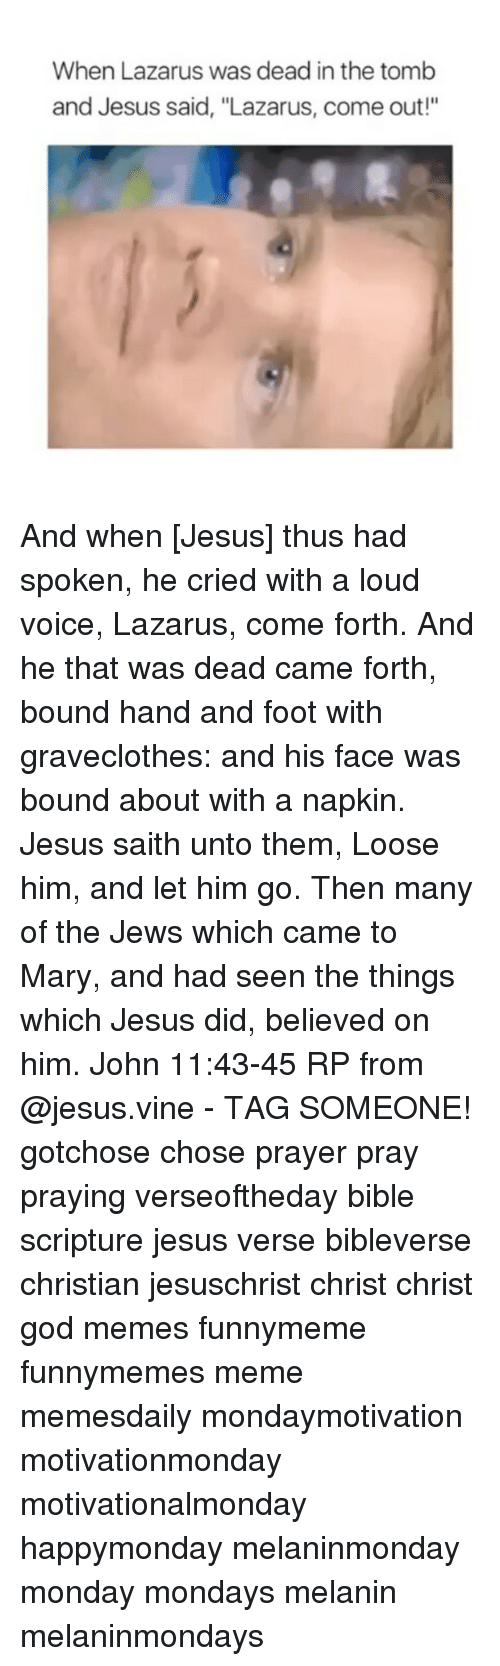 """God, Jesus, and Meme: When Lazarus was dead in the tomb  and Jesus said, """"Lazarus, come out!"""" And when [Jesus] thus had spoken, he cried with a loud voice, Lazarus, come forth. And he that was dead came forth, bound hand and foot with graveclothes: and his face was bound about with a napkin. Jesus saith unto them, Loose him, and let him go. Then many of the Jews which came to Mary, and had seen the things which Jesus did, believed on him. John 11:43-45 RP from @jesus.vine - TAG SOMEONE! gotchose chose prayer pray praying verseoftheday bible scripture jesus verse bibleverse christian jesuschrist christ christ god memes funnymeme funnymemes meme memesdaily mondaymotivation motivationmonday motivationalmonday happymonday melaninmonday monday mondays melanin melaninmondays"""